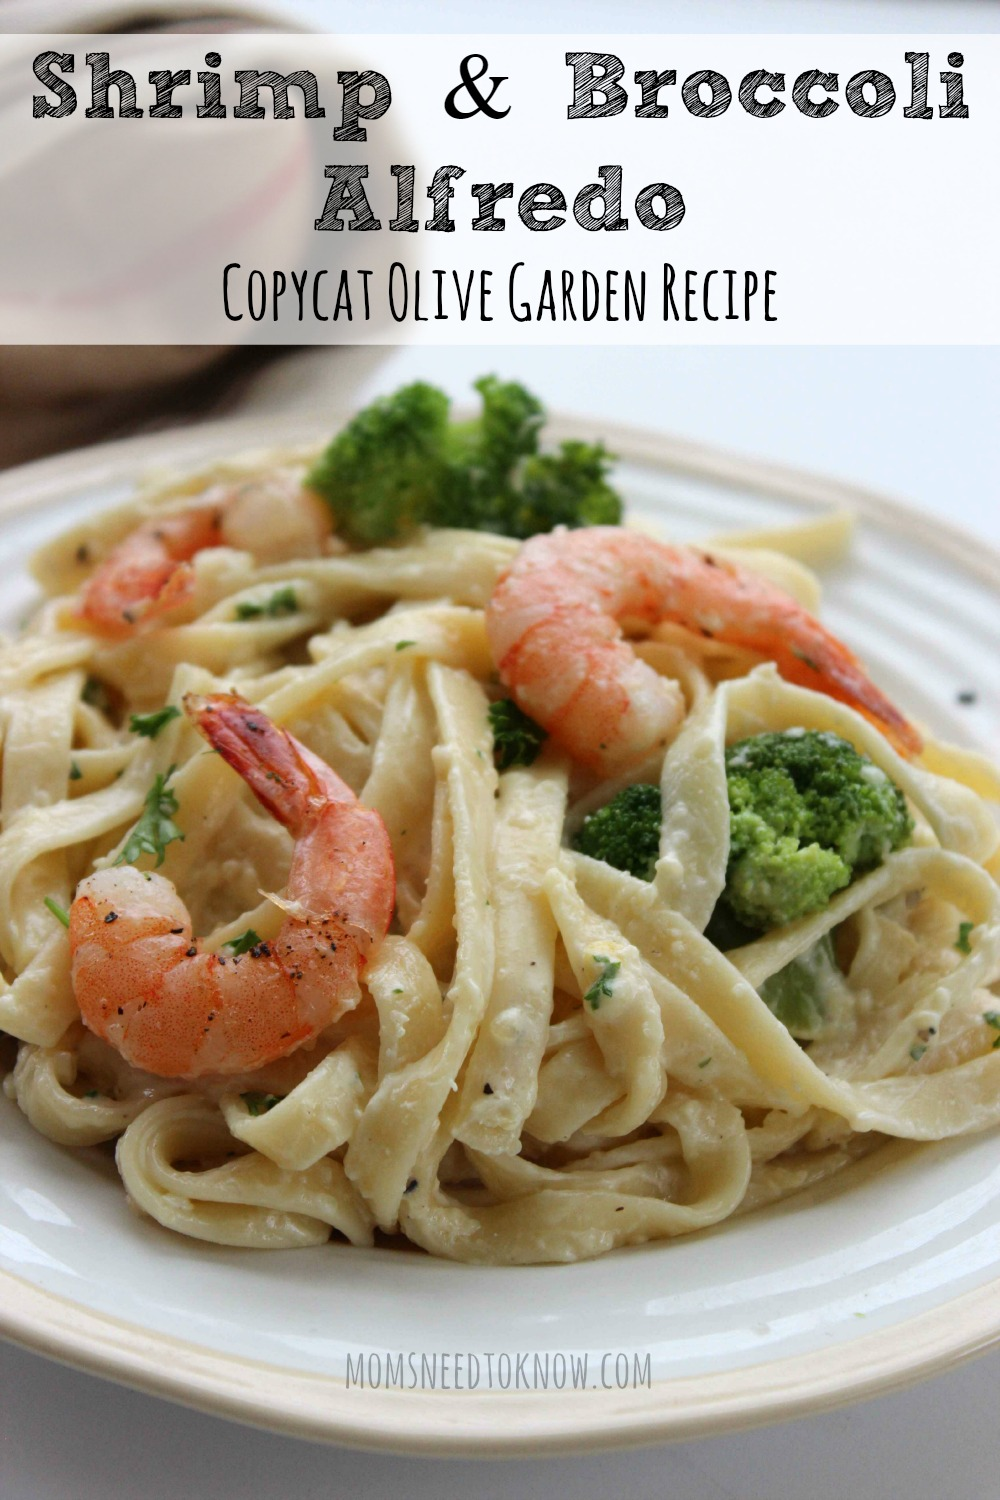 Copycat Olive Garden Alfredo Sauce Recipe Shrimp And Broccoli Alfredo